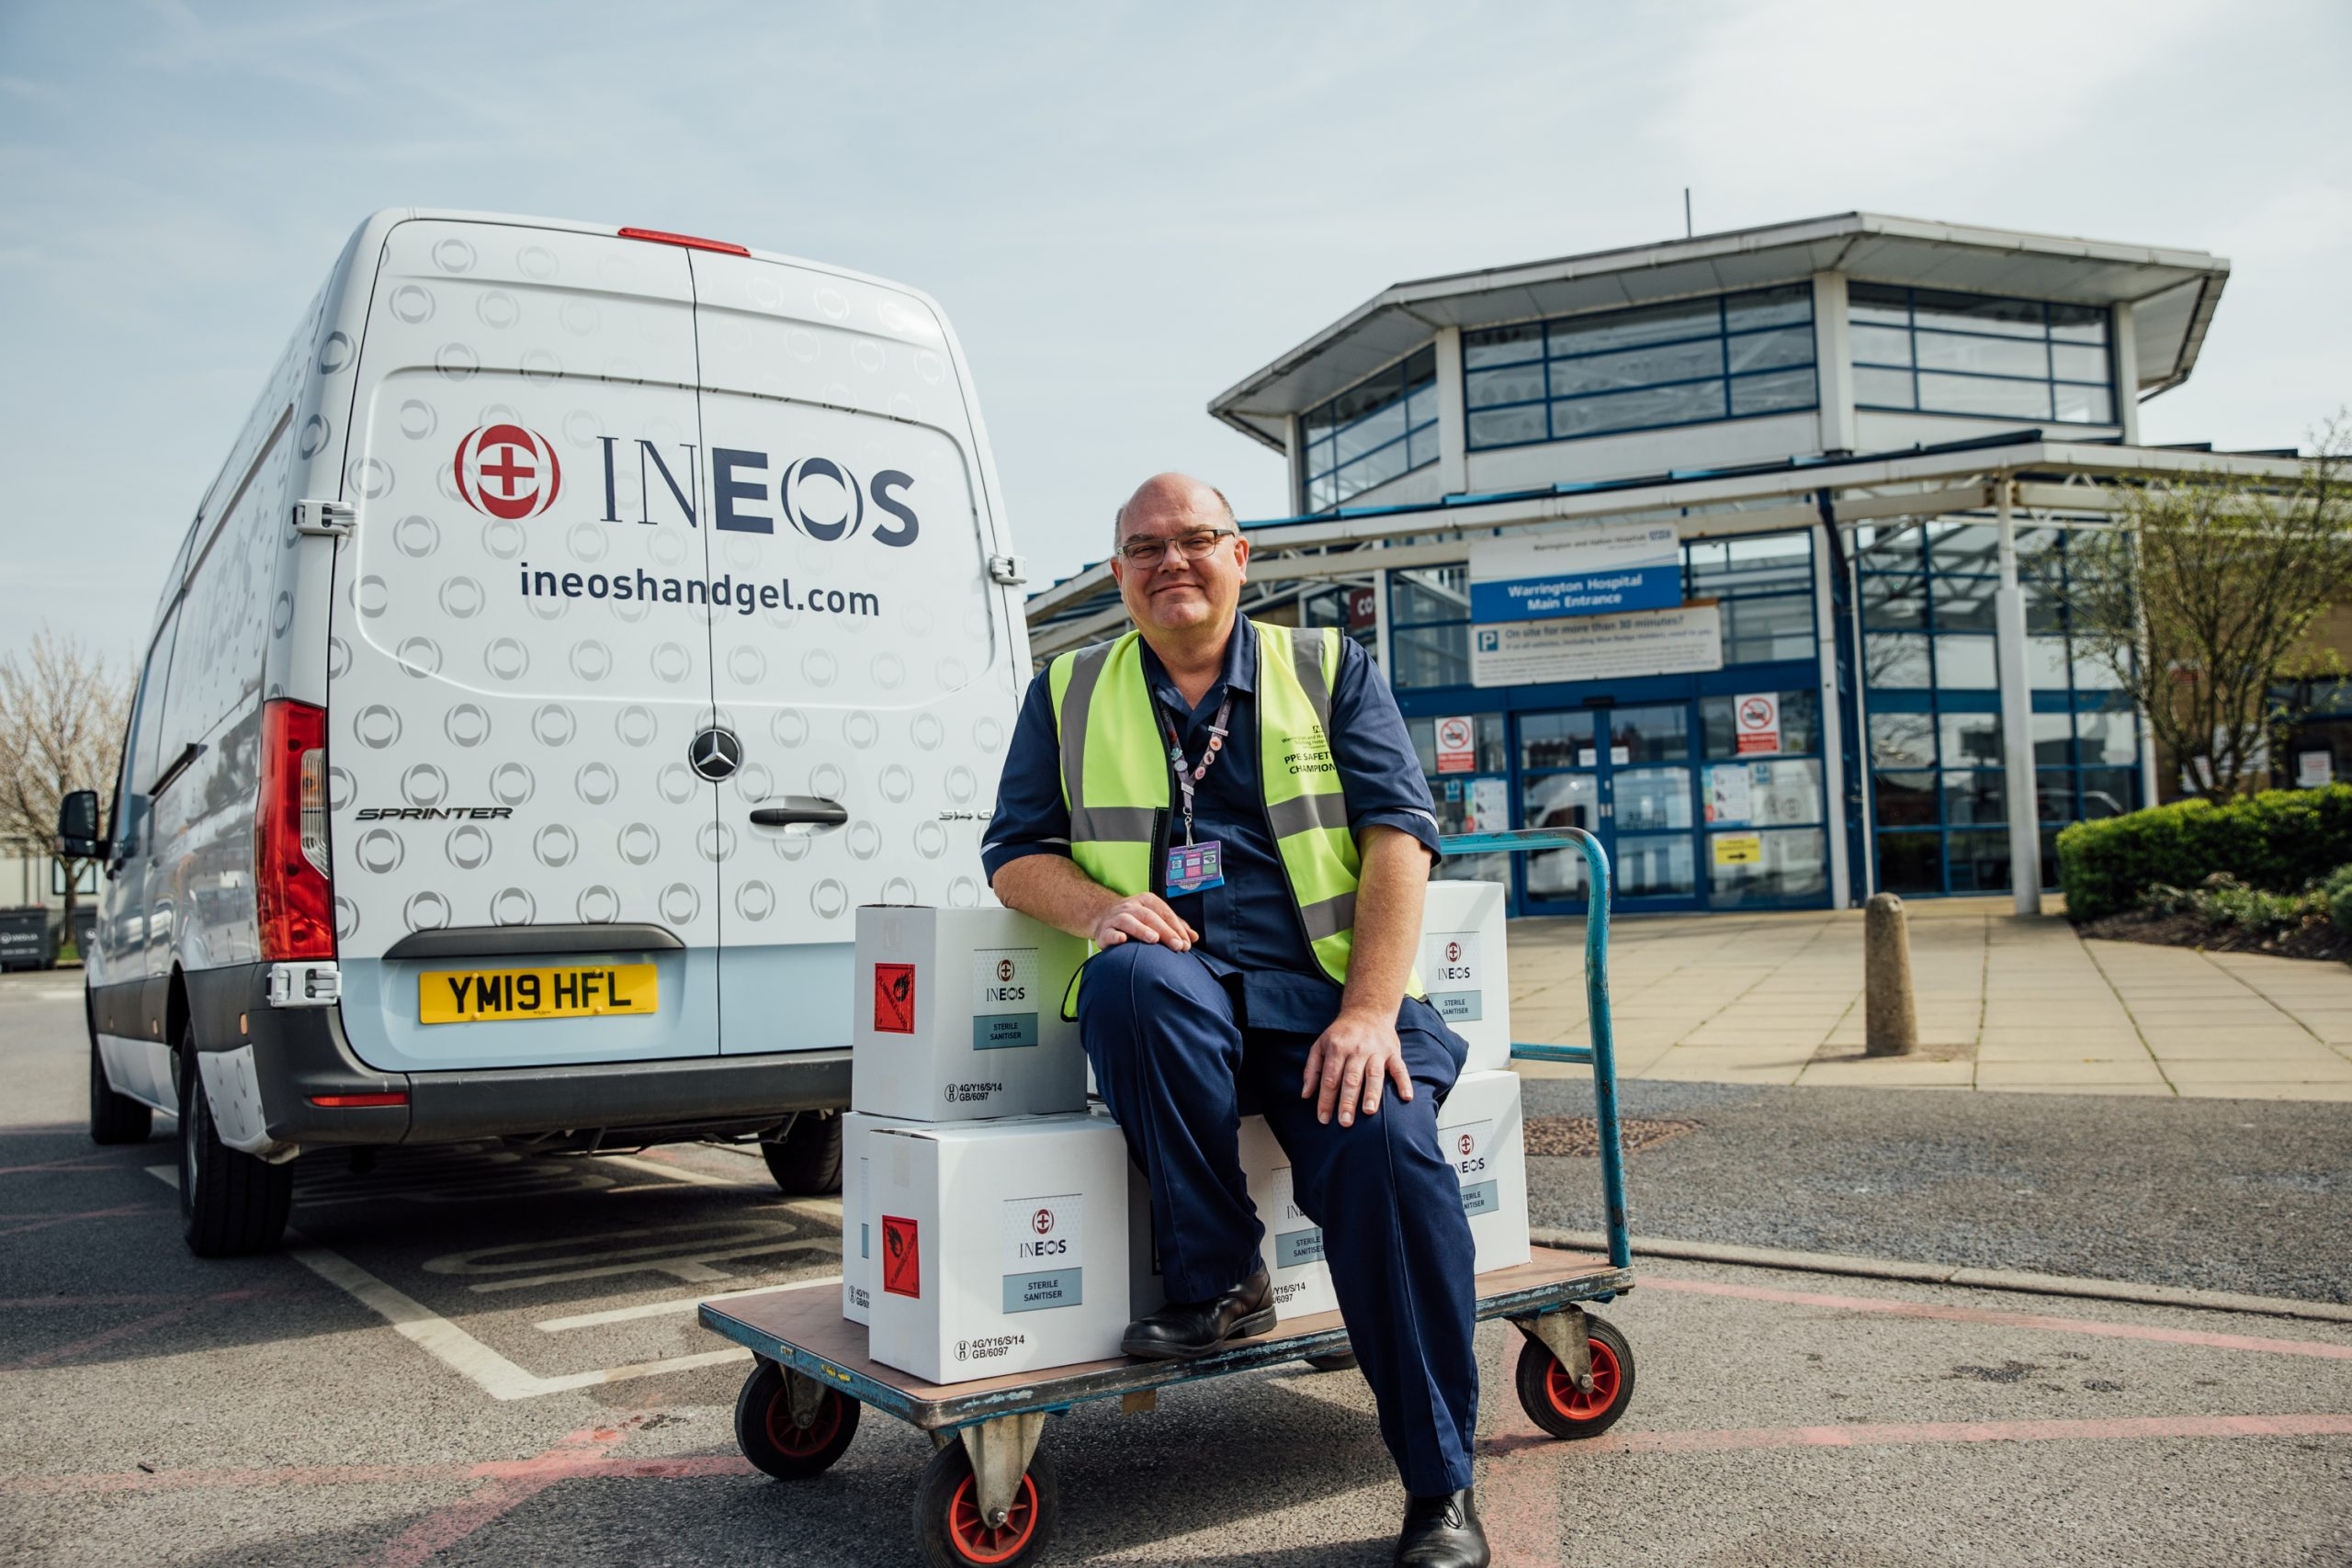 Hospital staff take delivery of supplies of INEOS hand sanitiser